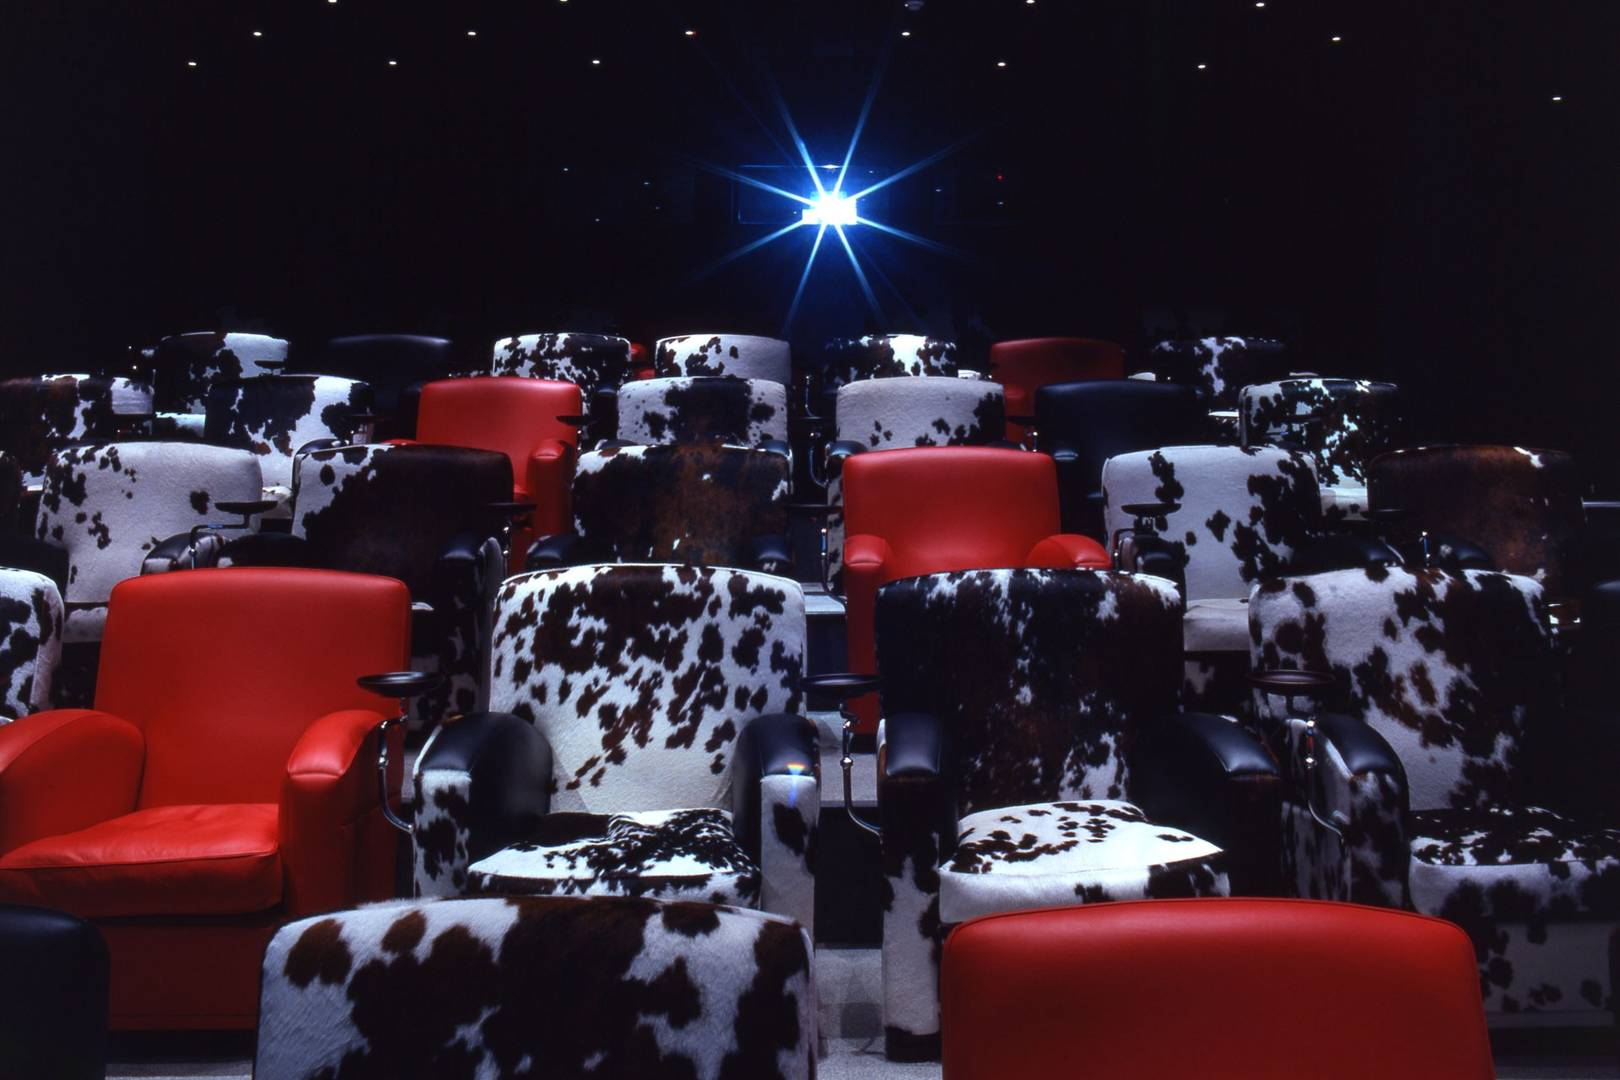 new concept 3ff44 bcc42 The best hotels with in-house cinemas   Where to watch films in London   CN  Traveller